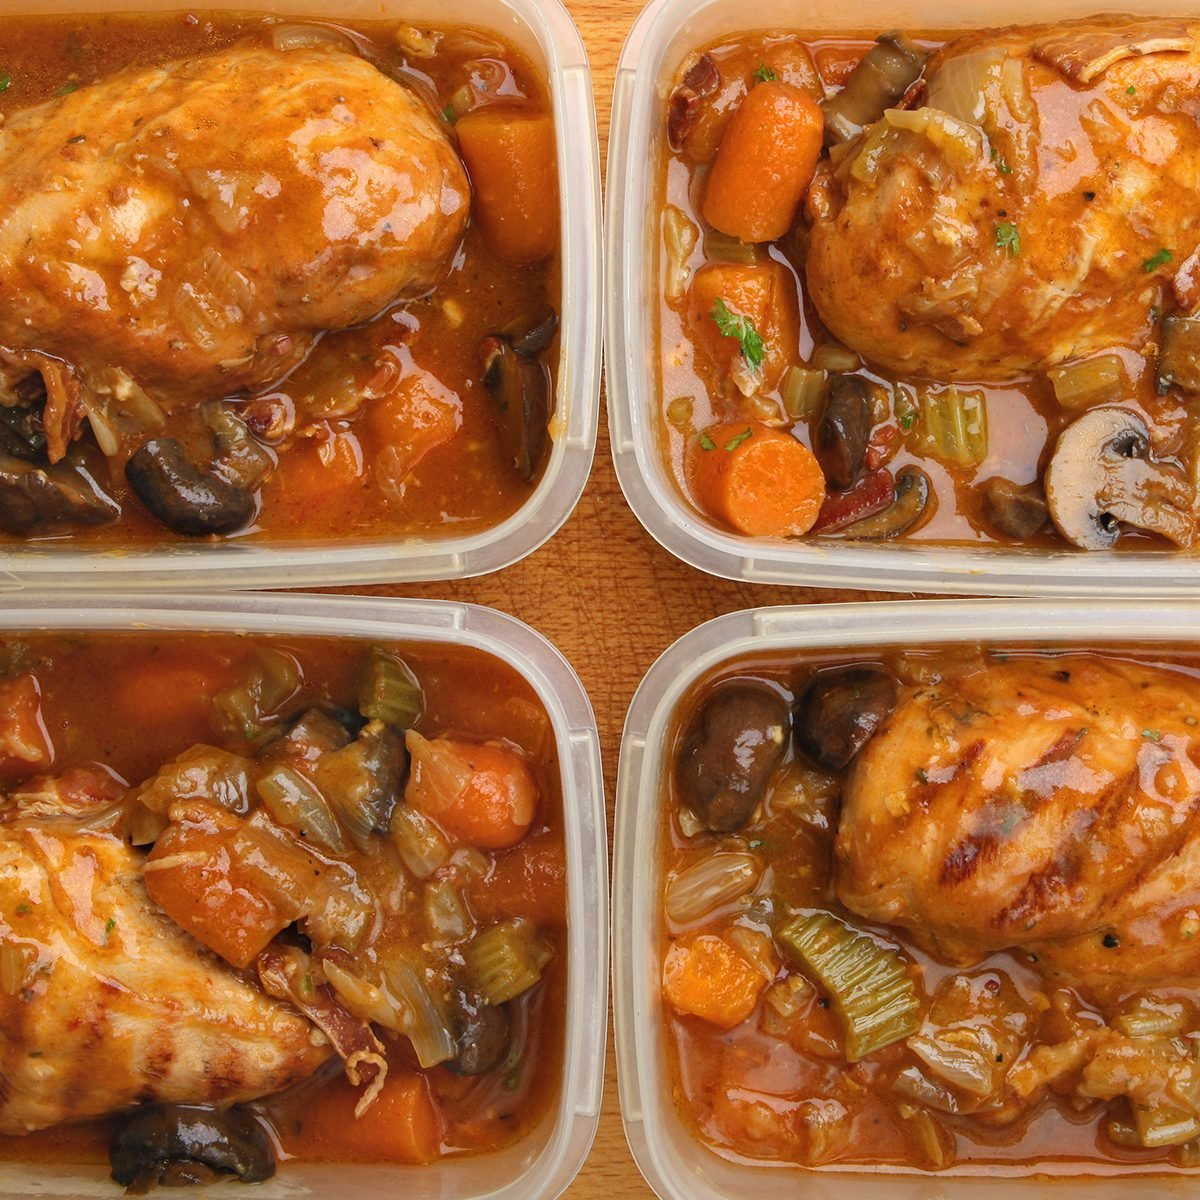 Slow-cooked chicken dinner portions being prepared for freezing or chilling.; Shutterstock ID 224231977; Job (TFH, TOH, RD, BNB, CWM, CM): TOH